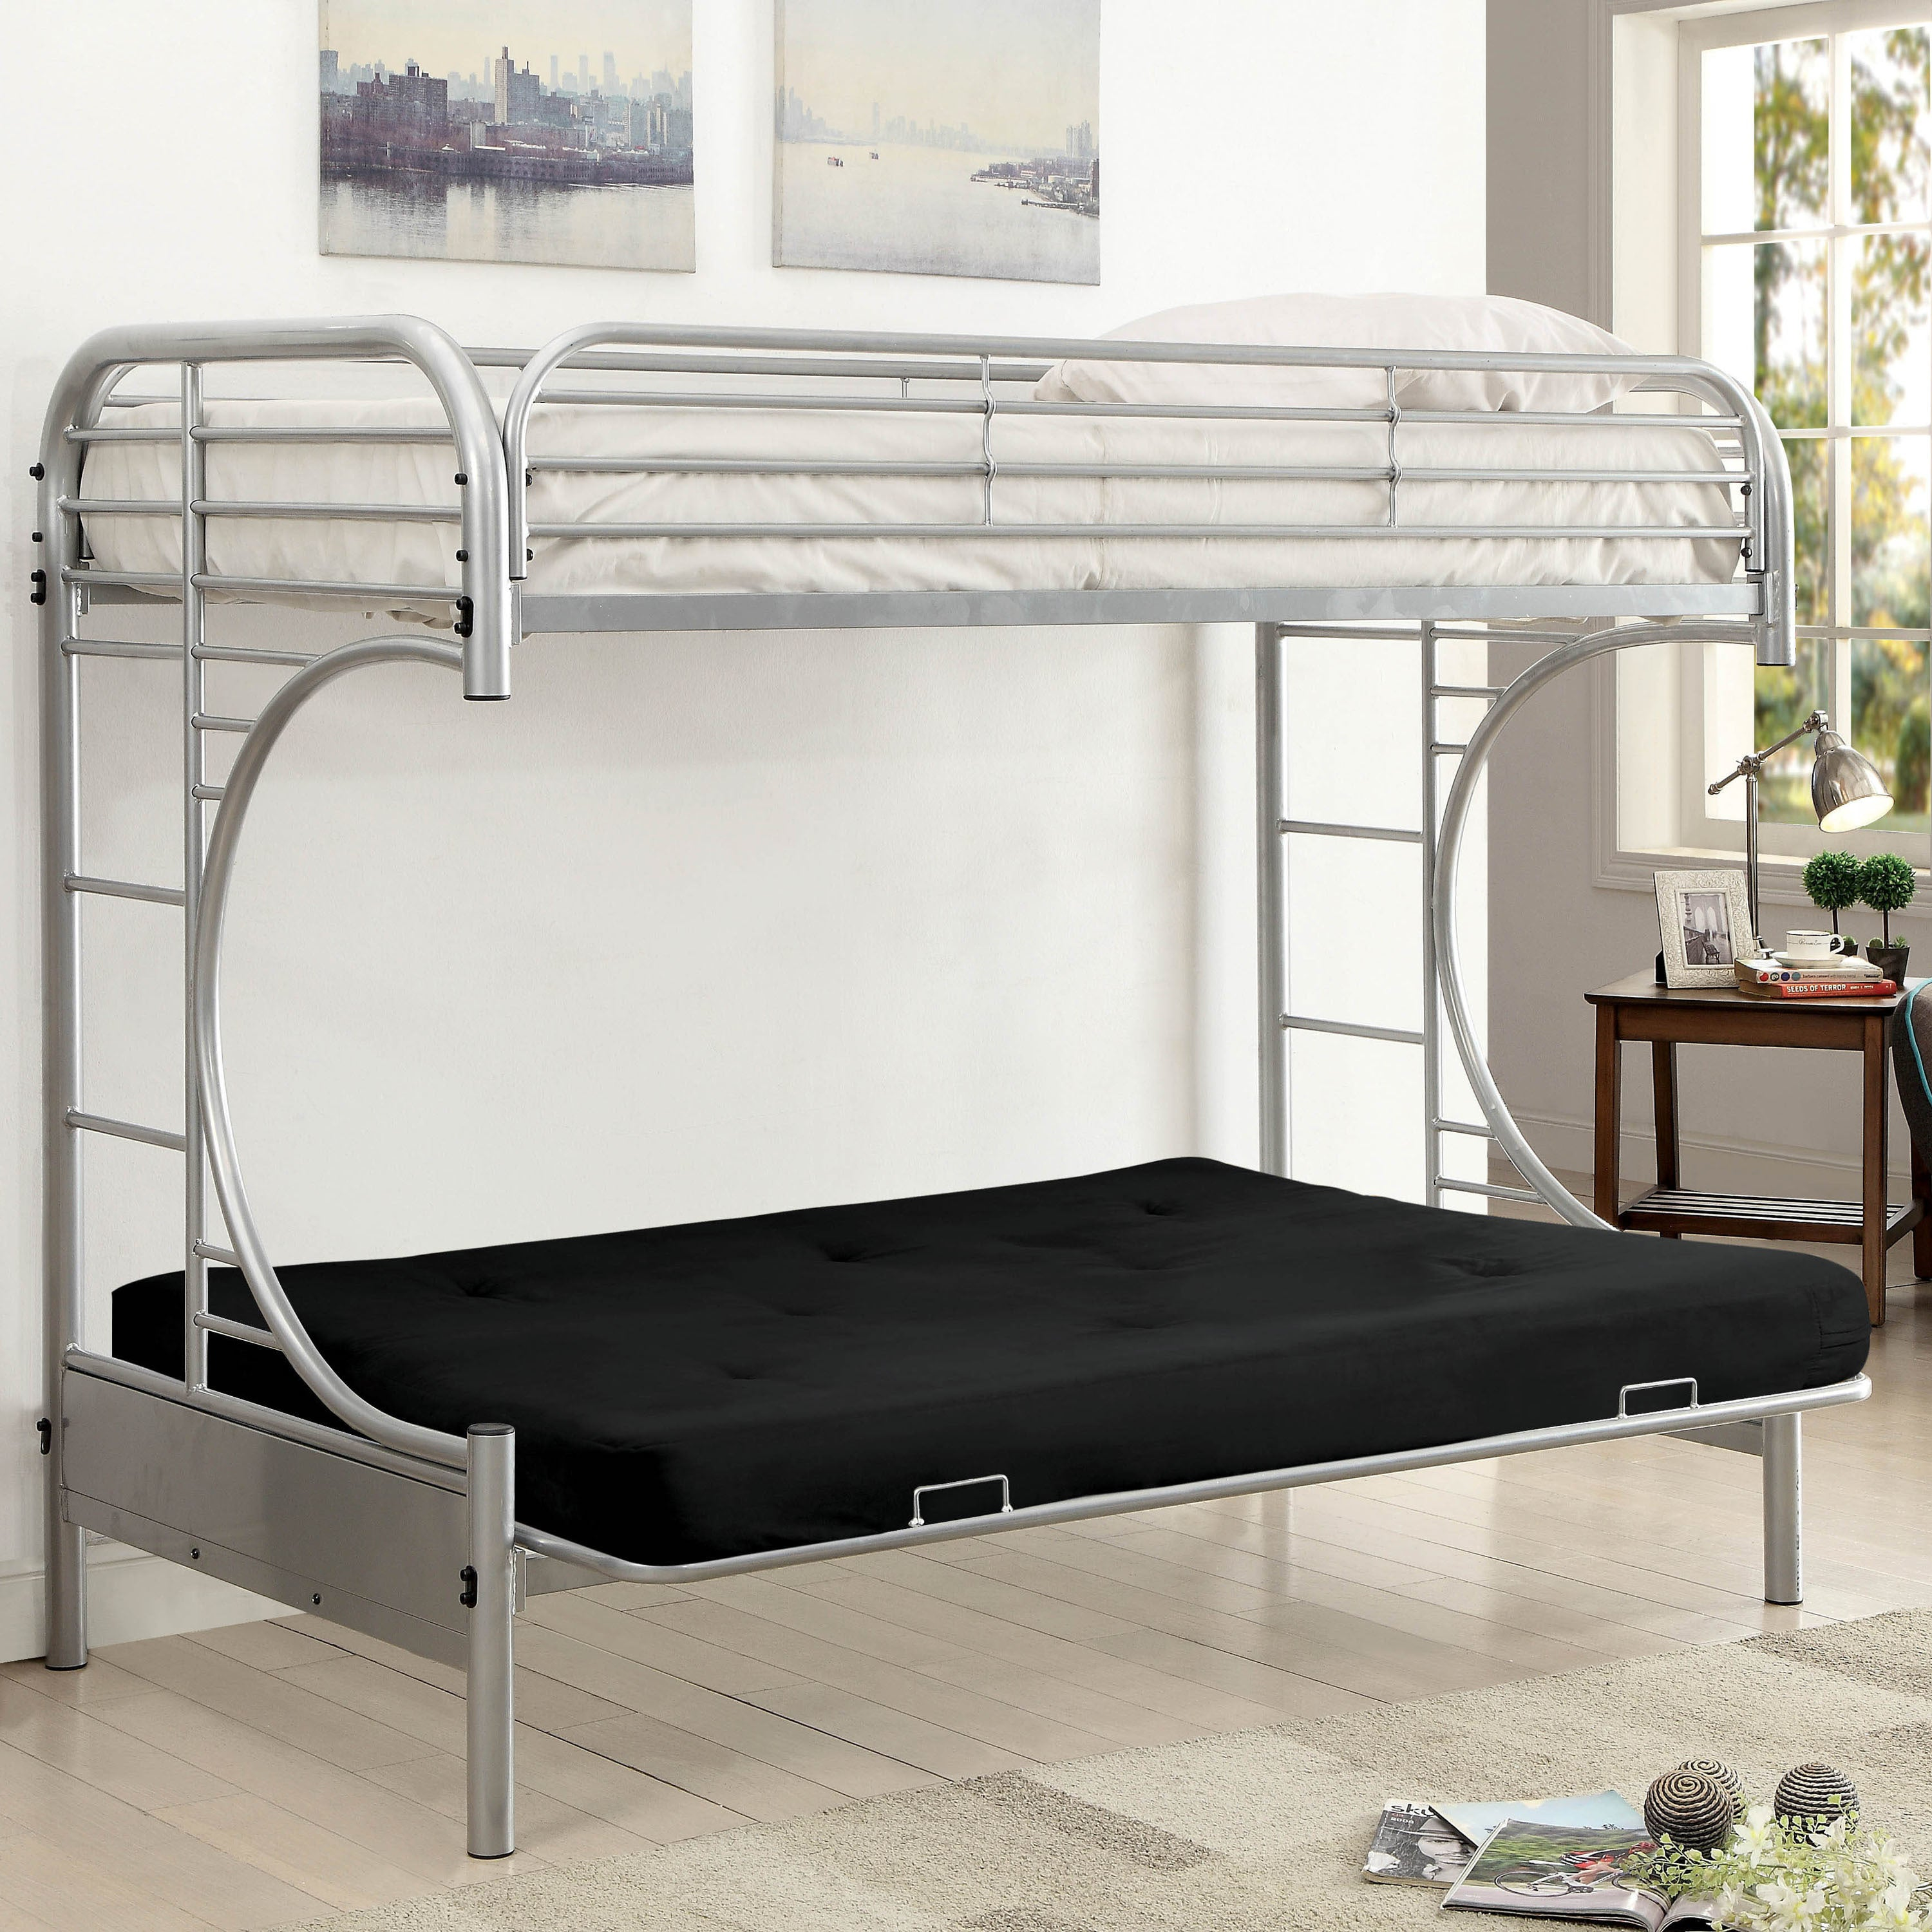 with bed loft of bunk free contemporary shipping home dante america futon today futons overstock product base garden furniture